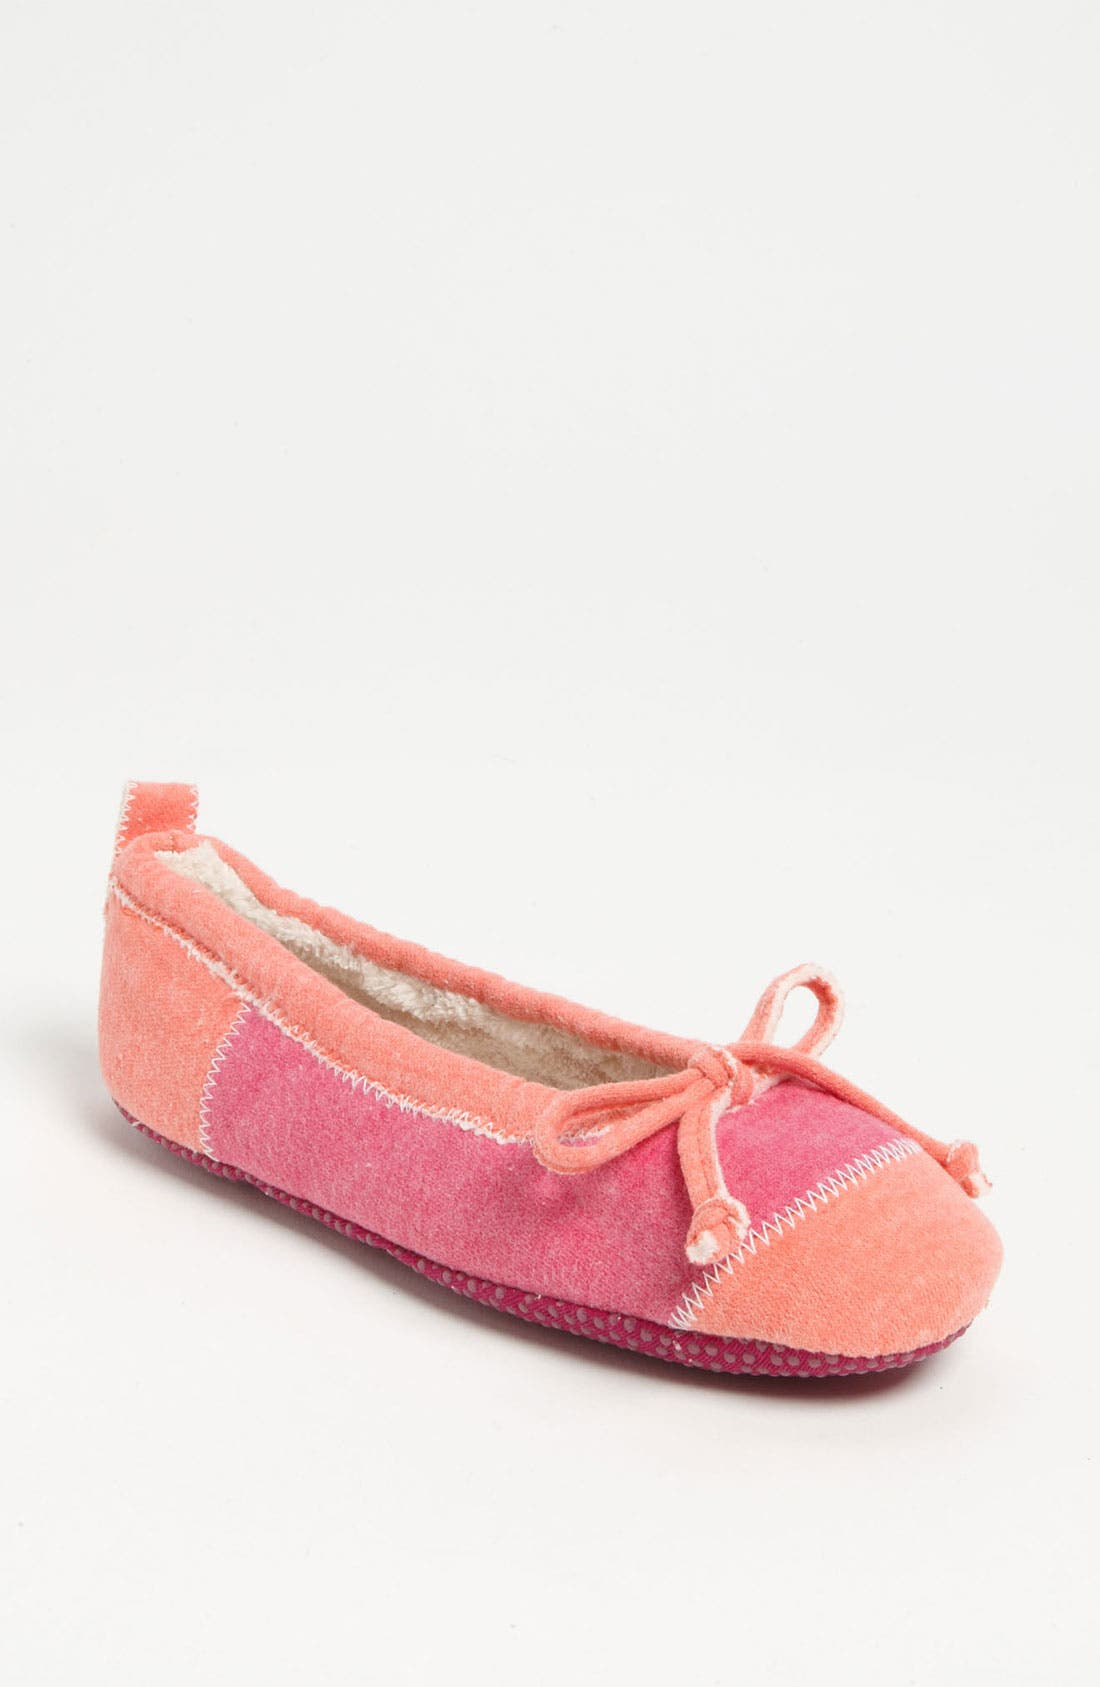 Alternate Image 1 Selected - Acorn 'Easy Spa' Slipper (Online Only)